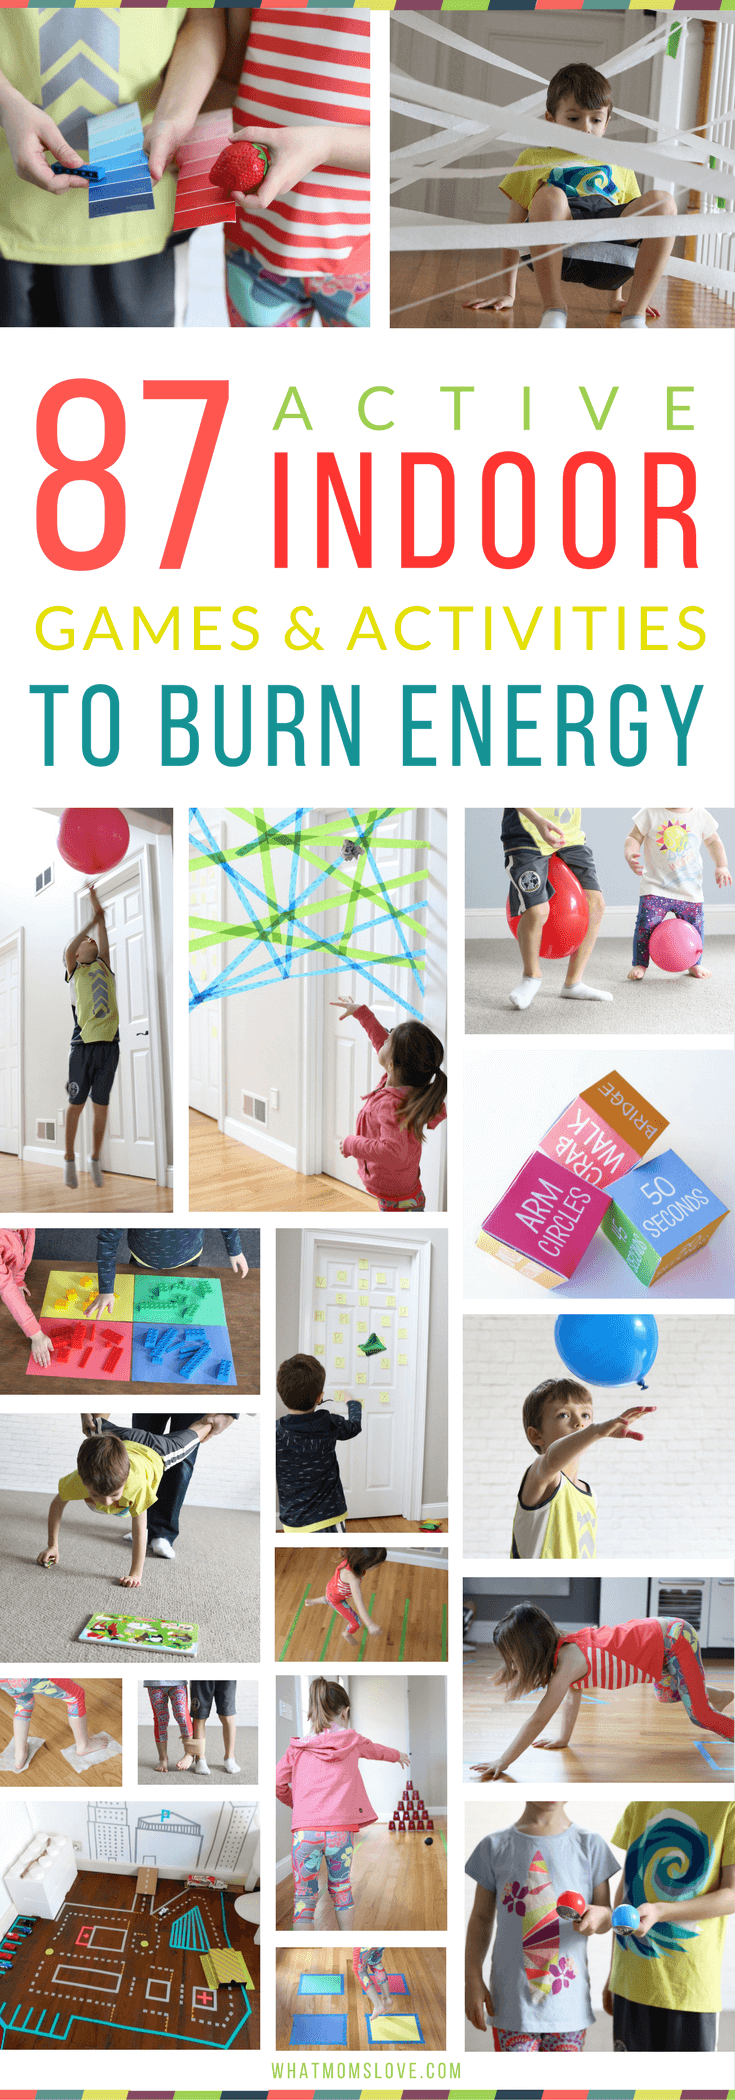 Best Active Indoor Activities For Kids | Fun Gross Motor Games and Creative Ideas For Winter (snow days!), Spring (rainy days!) or for when Cabin Fever strikes | Awesome Boredom Busters and Brain Breaks for Toddlers, Preschool and beyond to get their energy out!